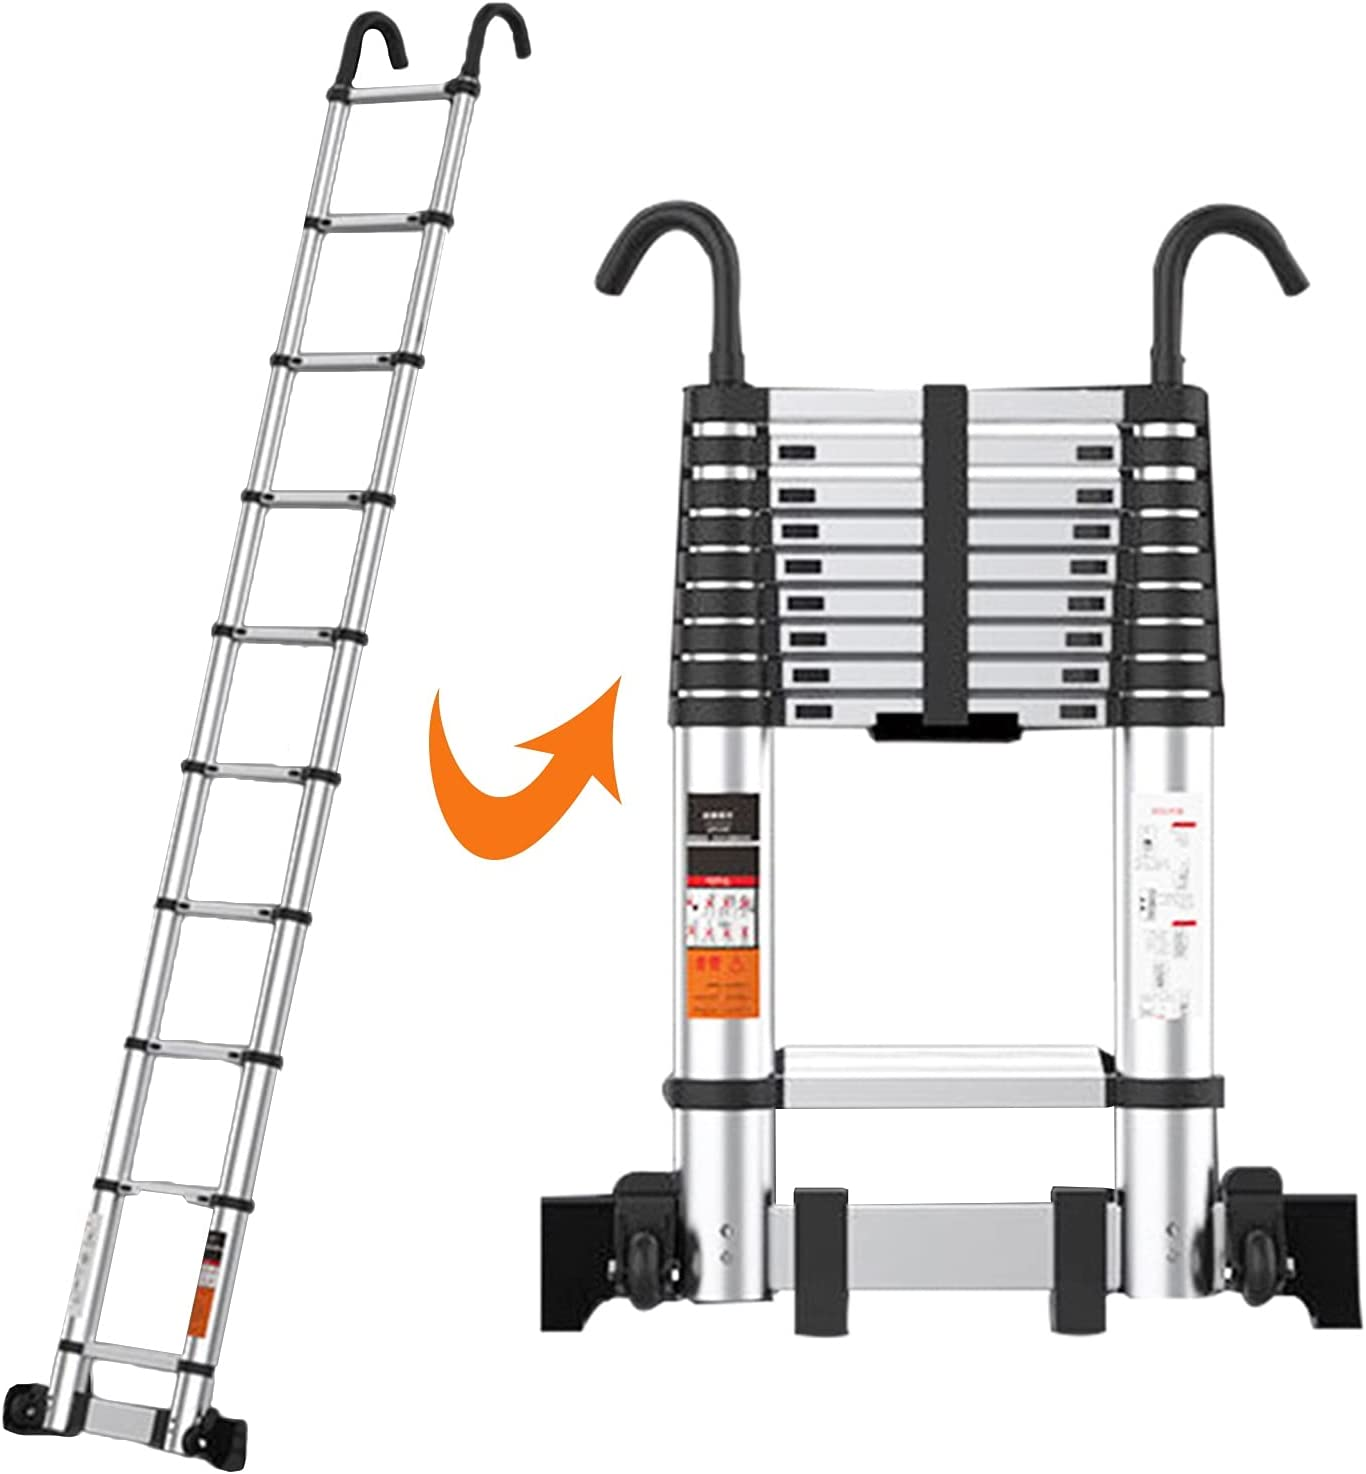 Under blast sales Telescopic Ladder 2.7m 3.5m 3.9m 4.7m 7.1m T 5.5m 5.9m 5.1m Special price for a limited time 6.3m